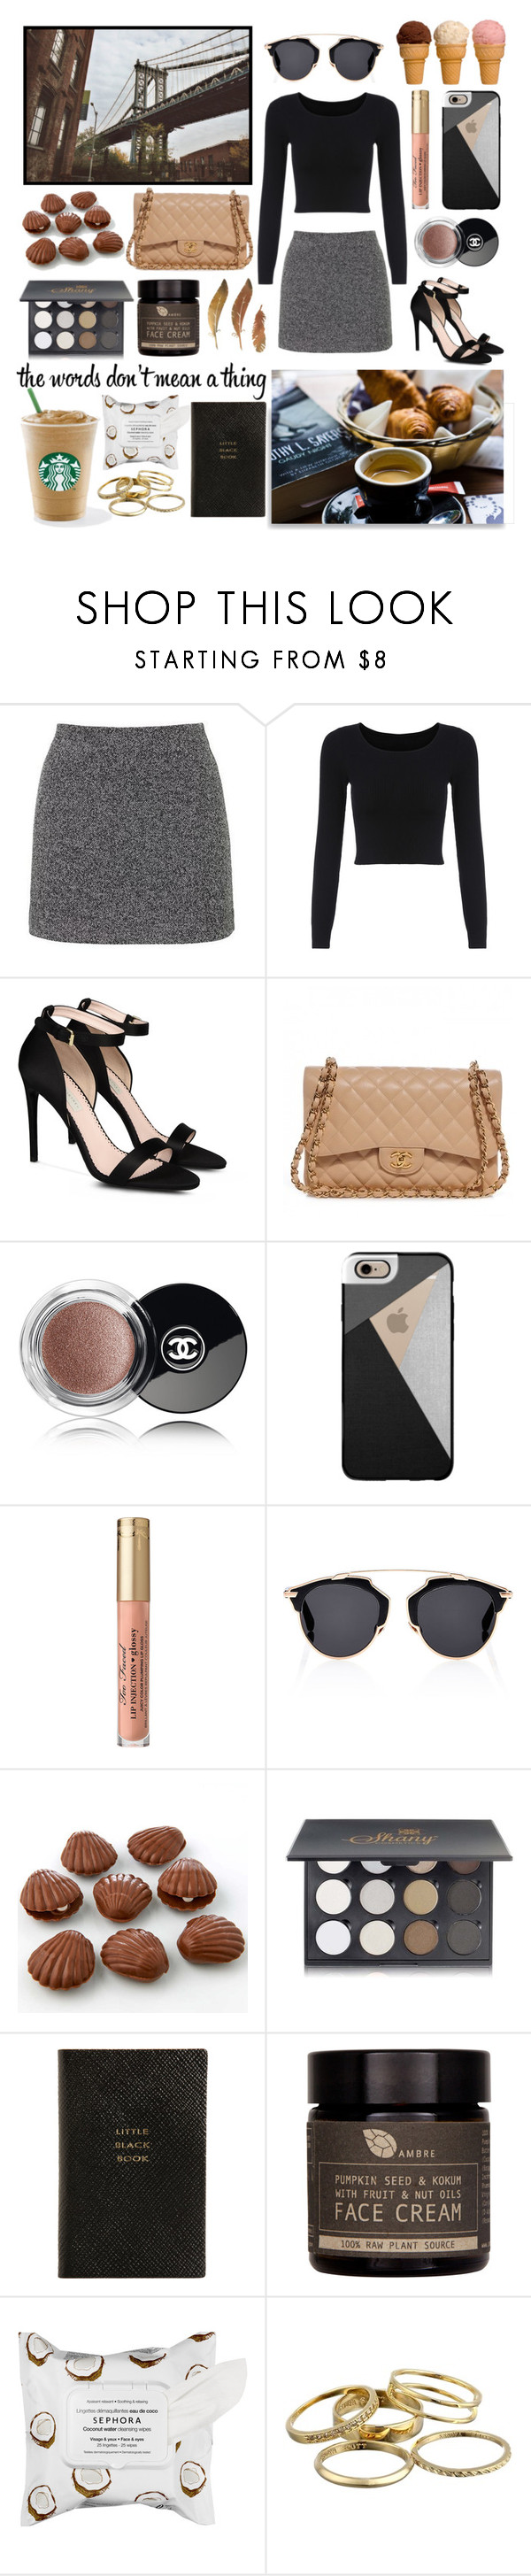 """""""Untitled #138"""" by gorgeousjuliet ❤ liked on Polyvore featuring Topshop, STELLA McCARTNEY, Chanel, Casetify, Romance Was Born, Christian Dior, Shany, Smythson, AMBRE and Sephora Collection"""